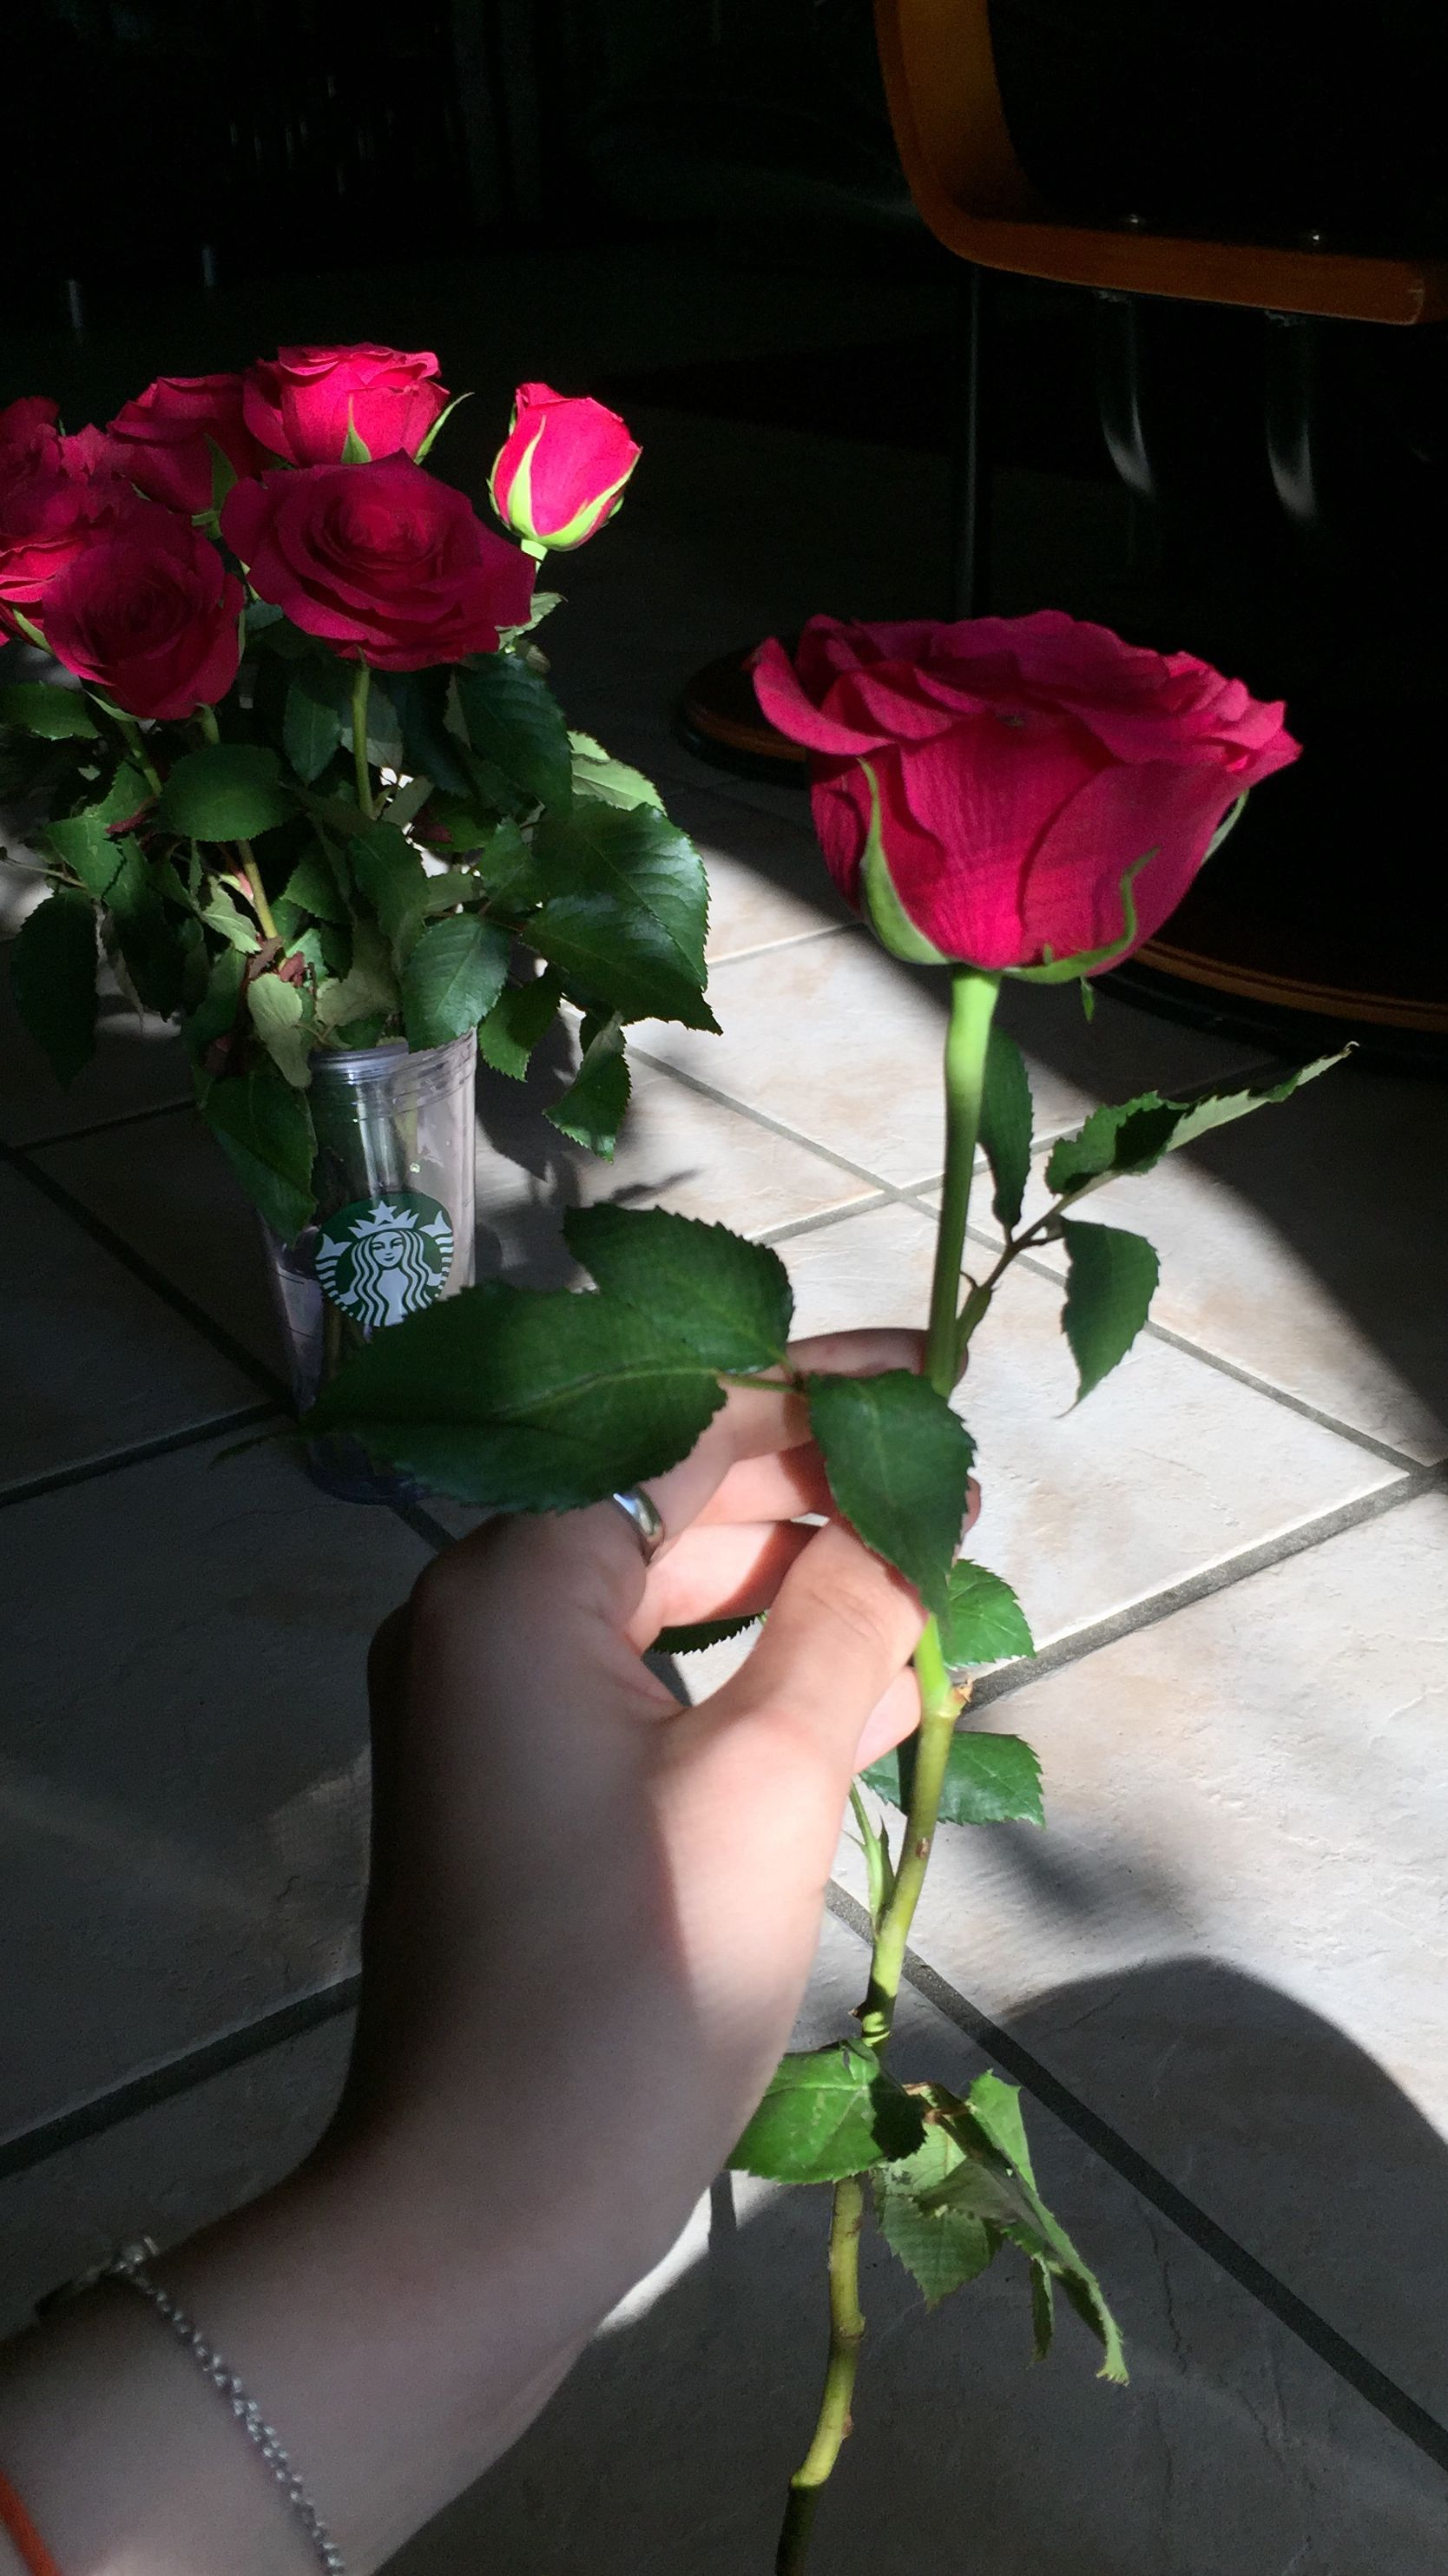 Pin By S S D On Dpz Beautiful Roses Flower Aesthetic Flower Beauty